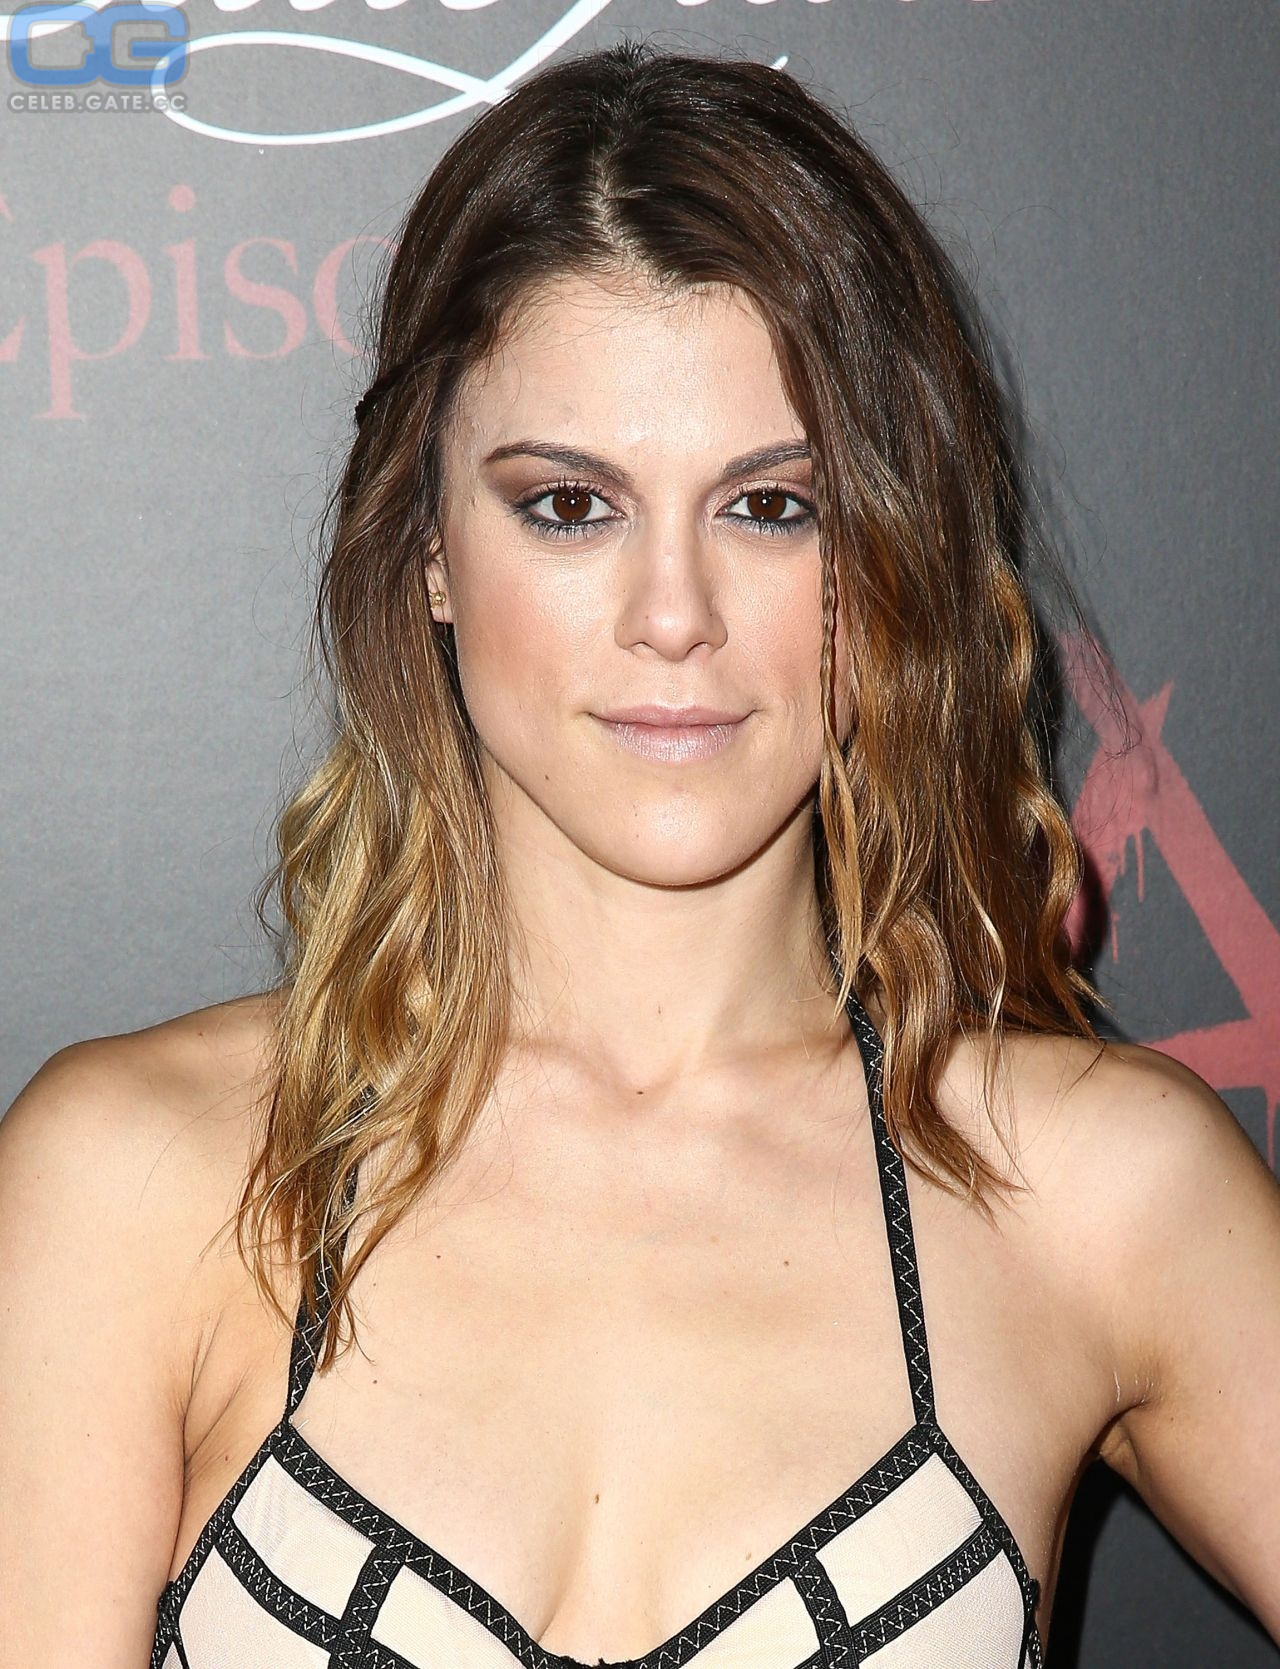 Sexy Lindsey Shaw nudes (43 photo), Tits, Paparazzi, Twitter, swimsuit 2017